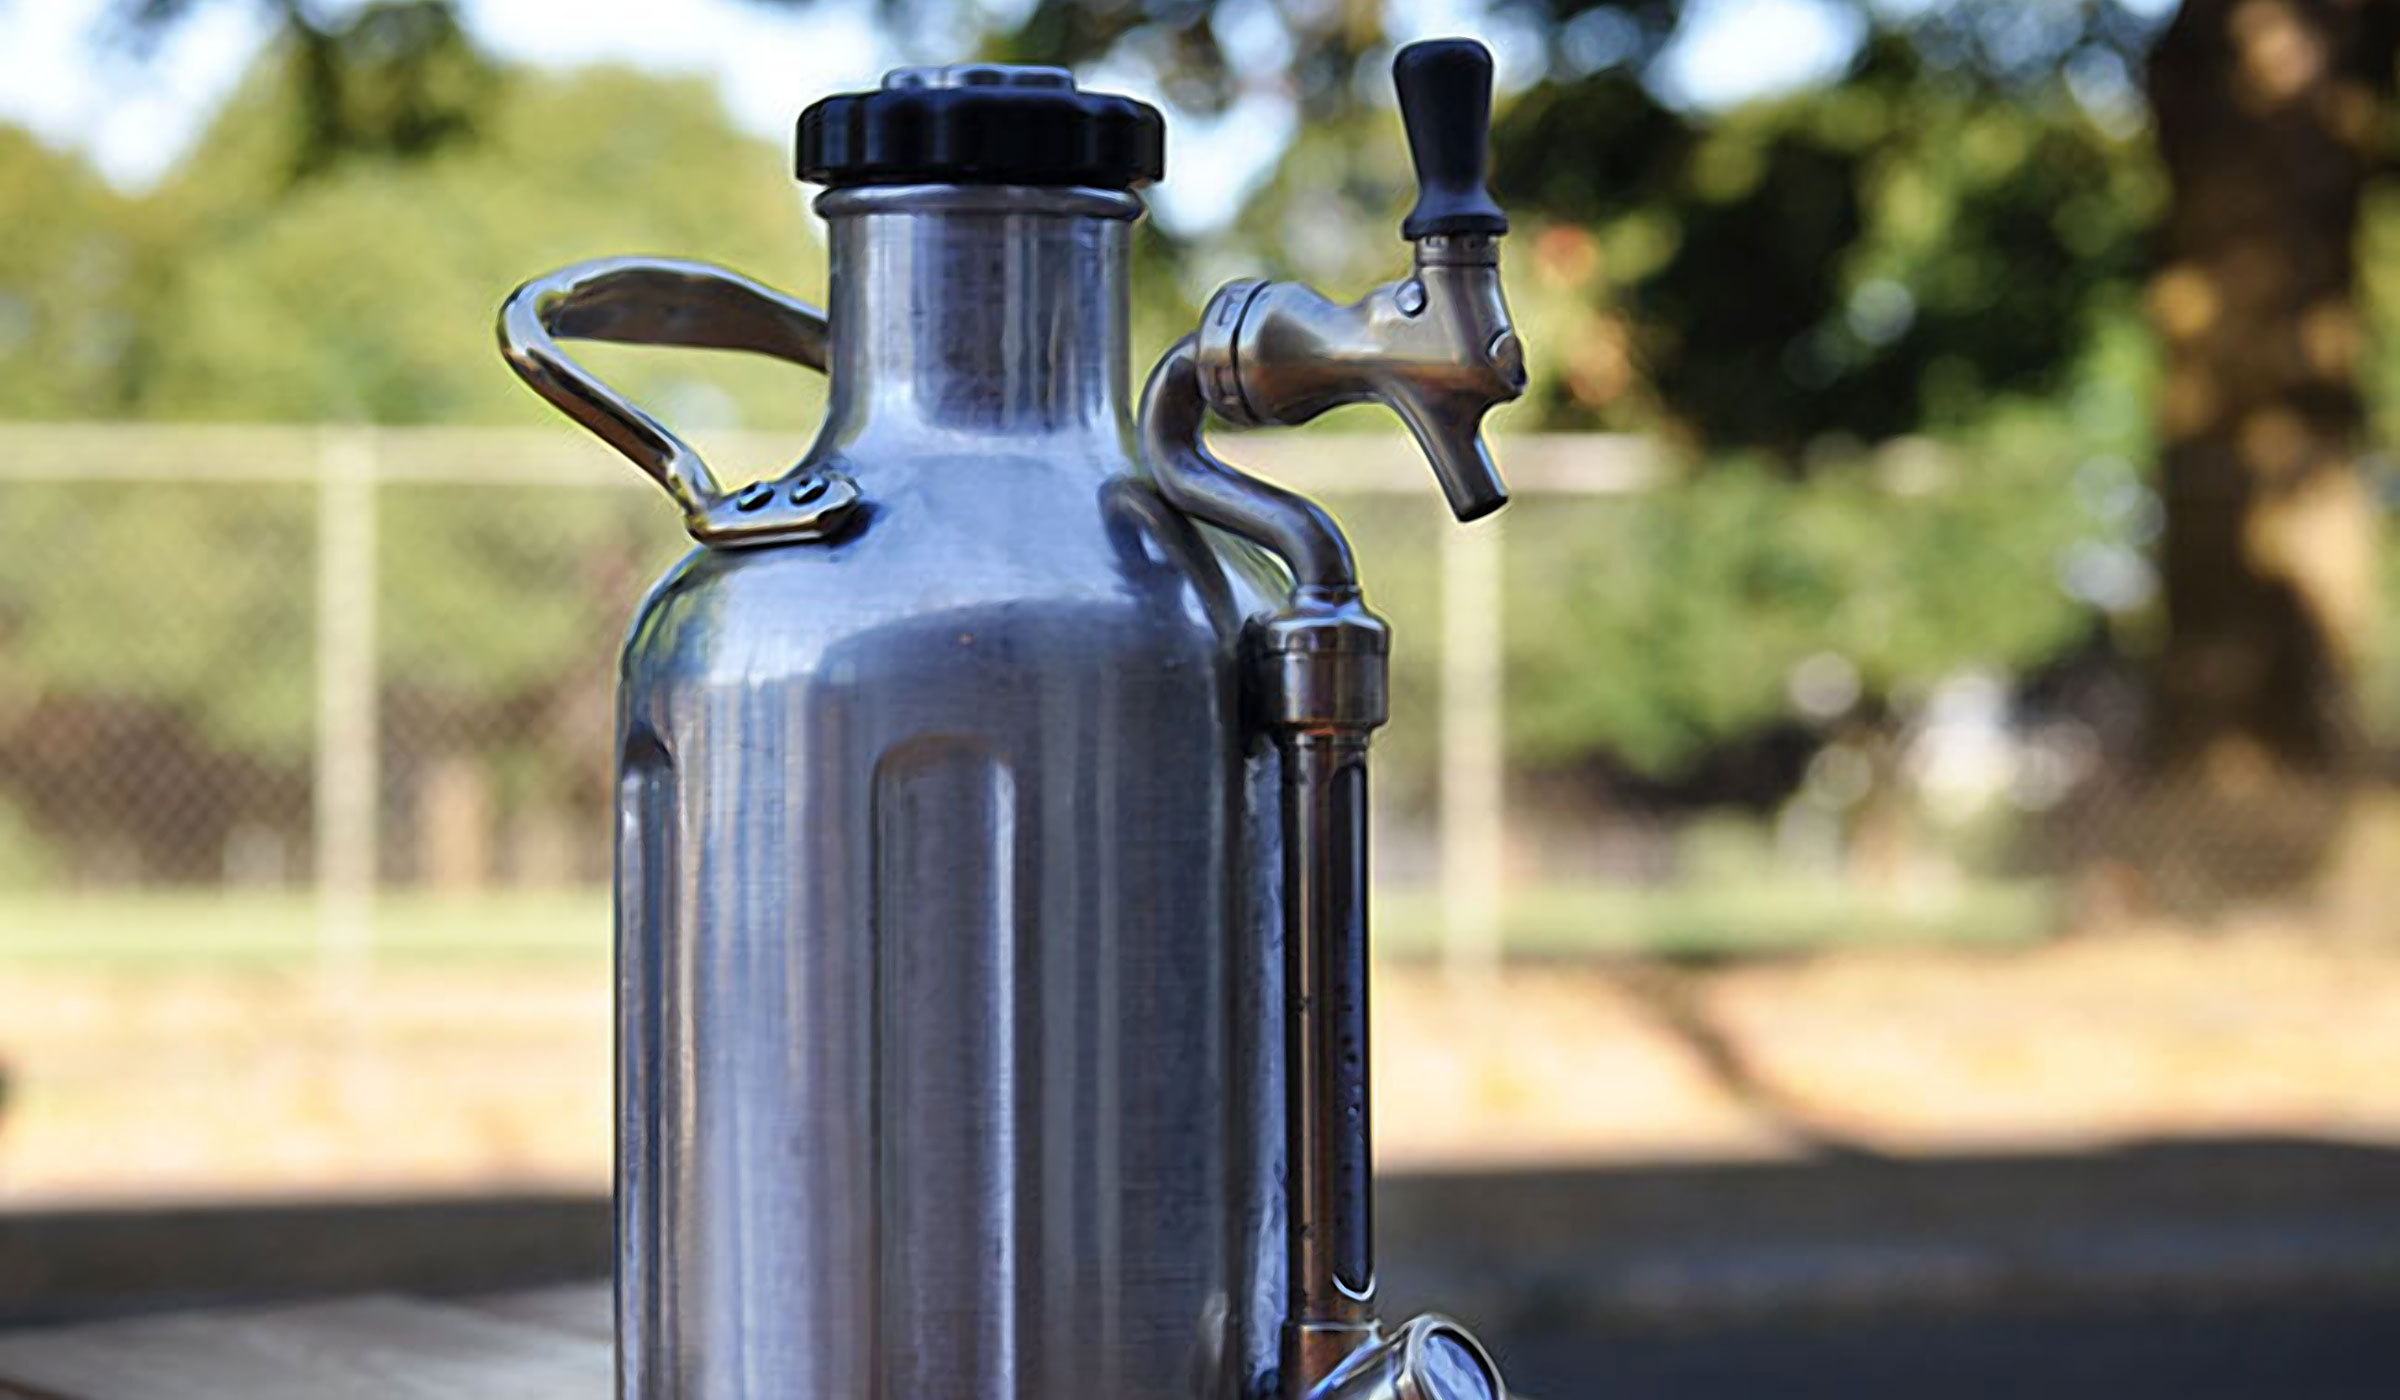 THE UKEG PRESSURIZED GROWLER